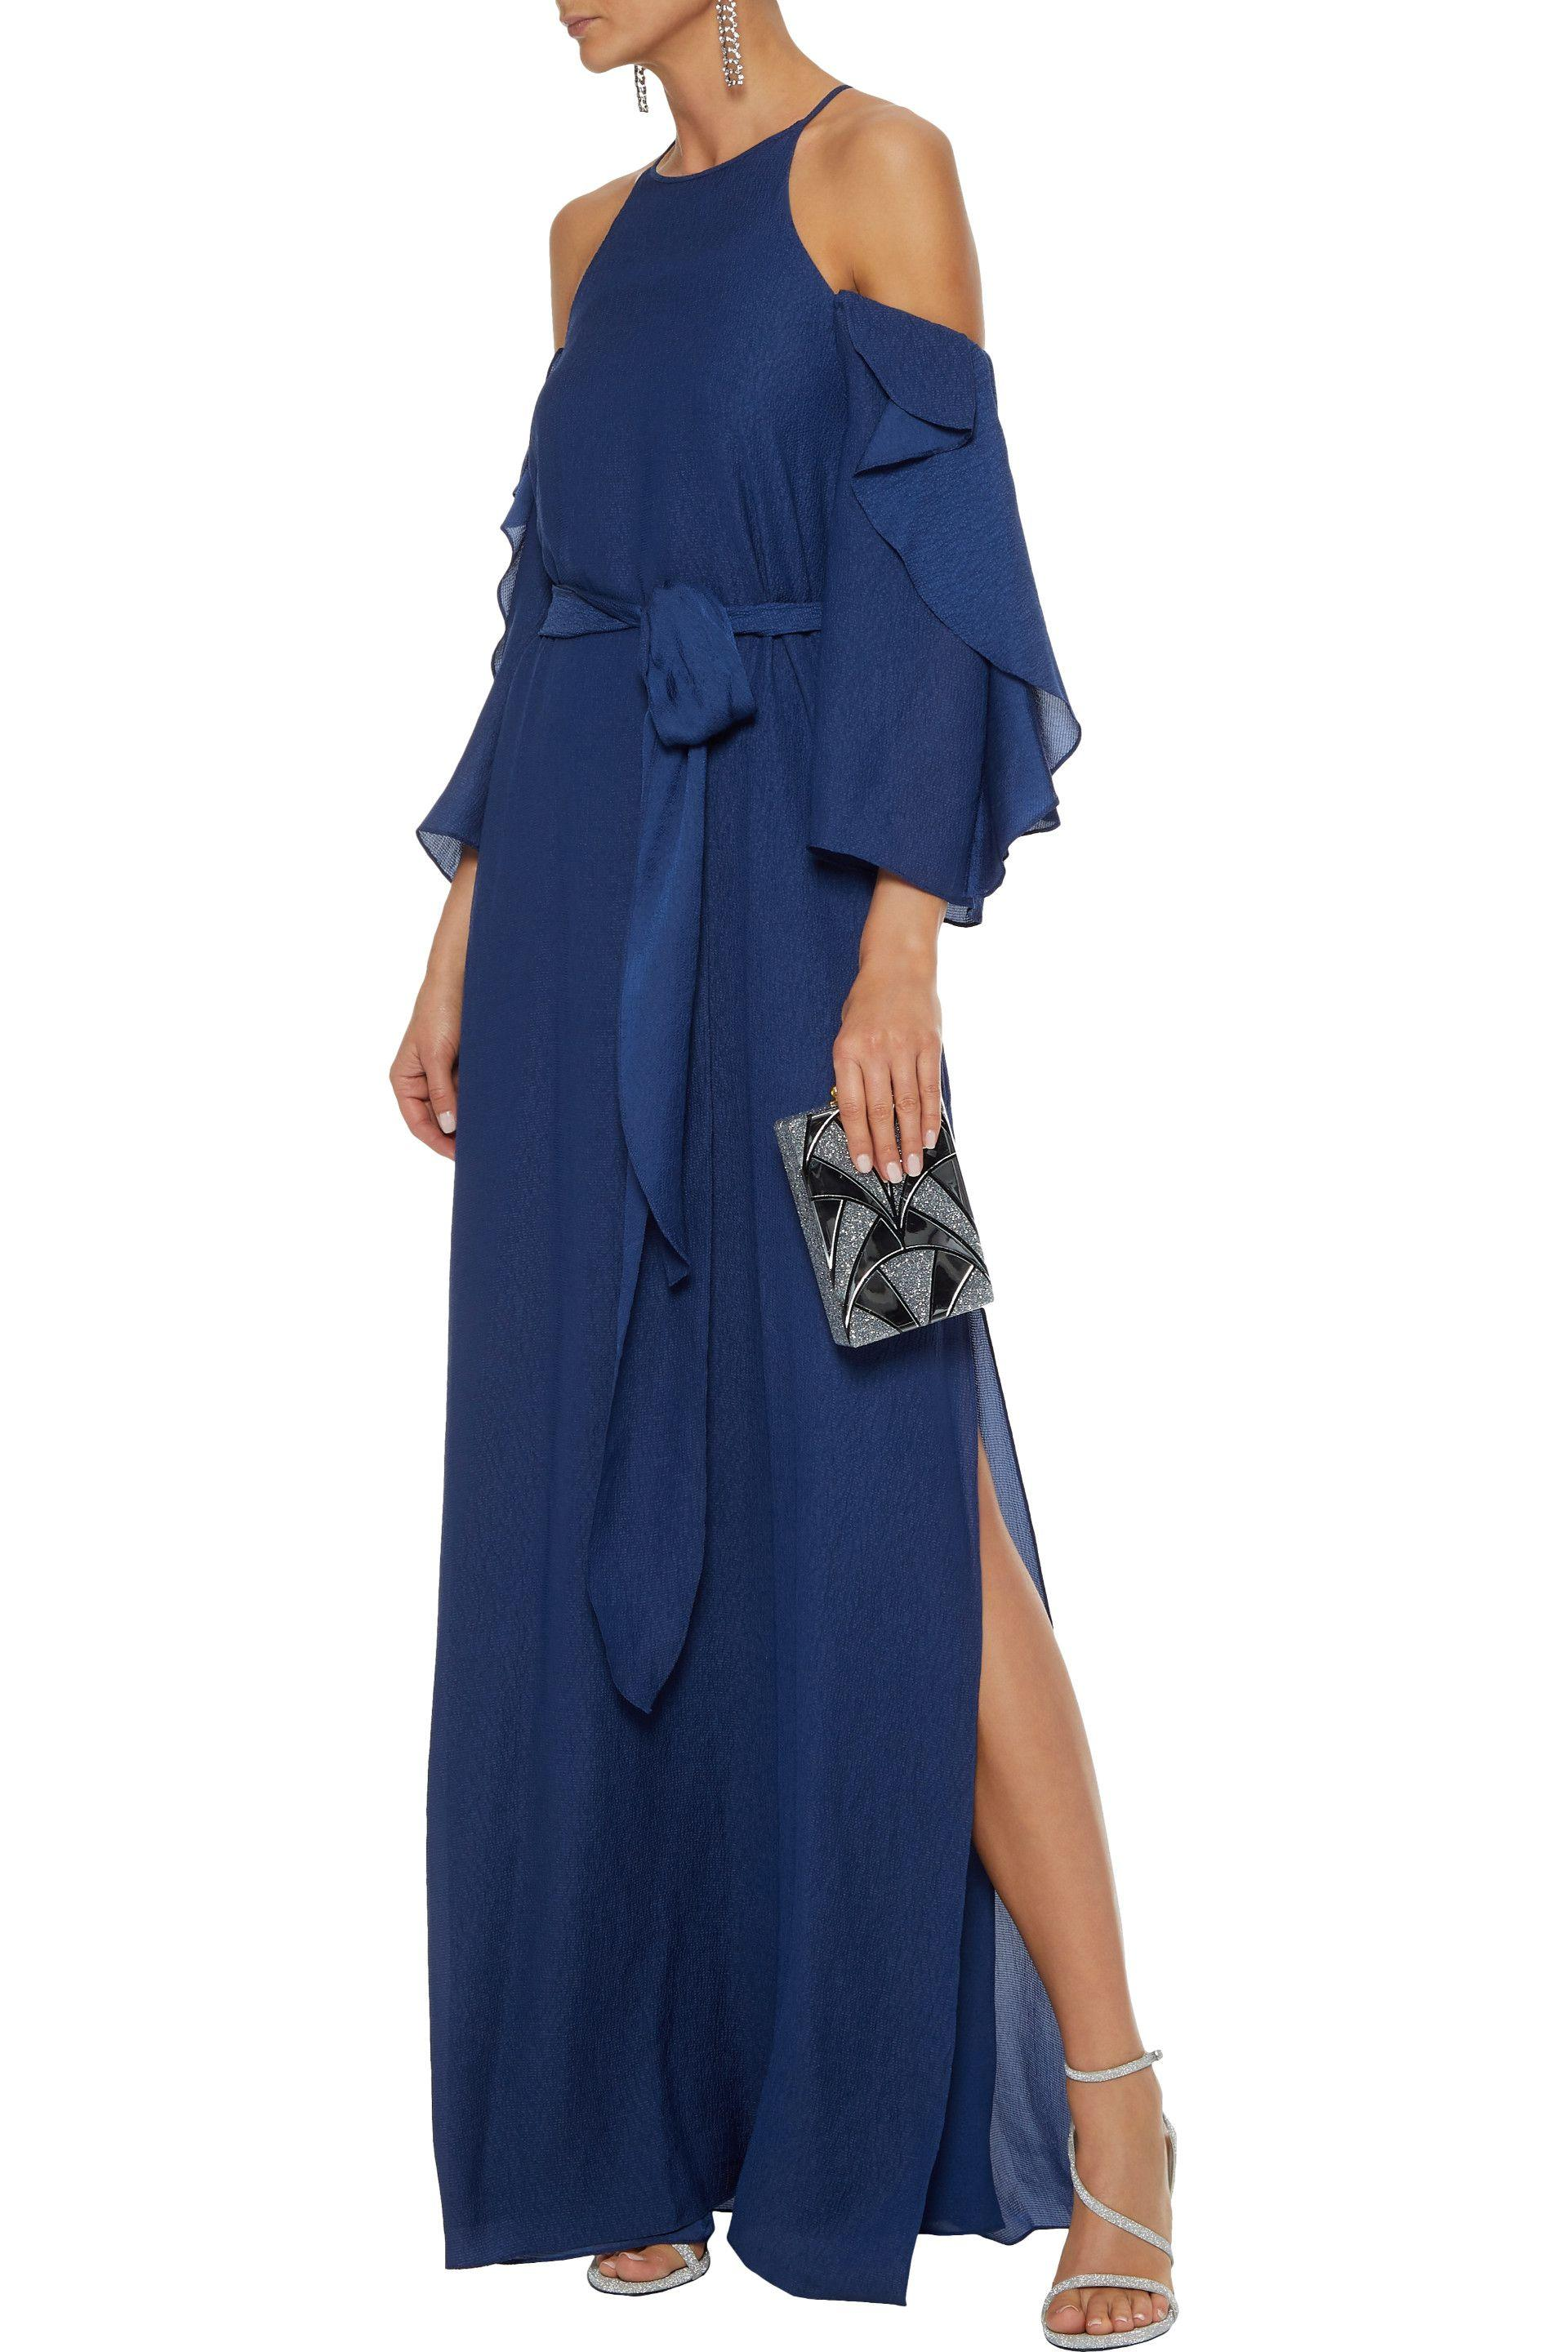 5499f4ad7e2a Halston Heritage - Blue Woman Cold-shoulder Belted Seersucker Gown Navy -  Lyst. View fullscreen